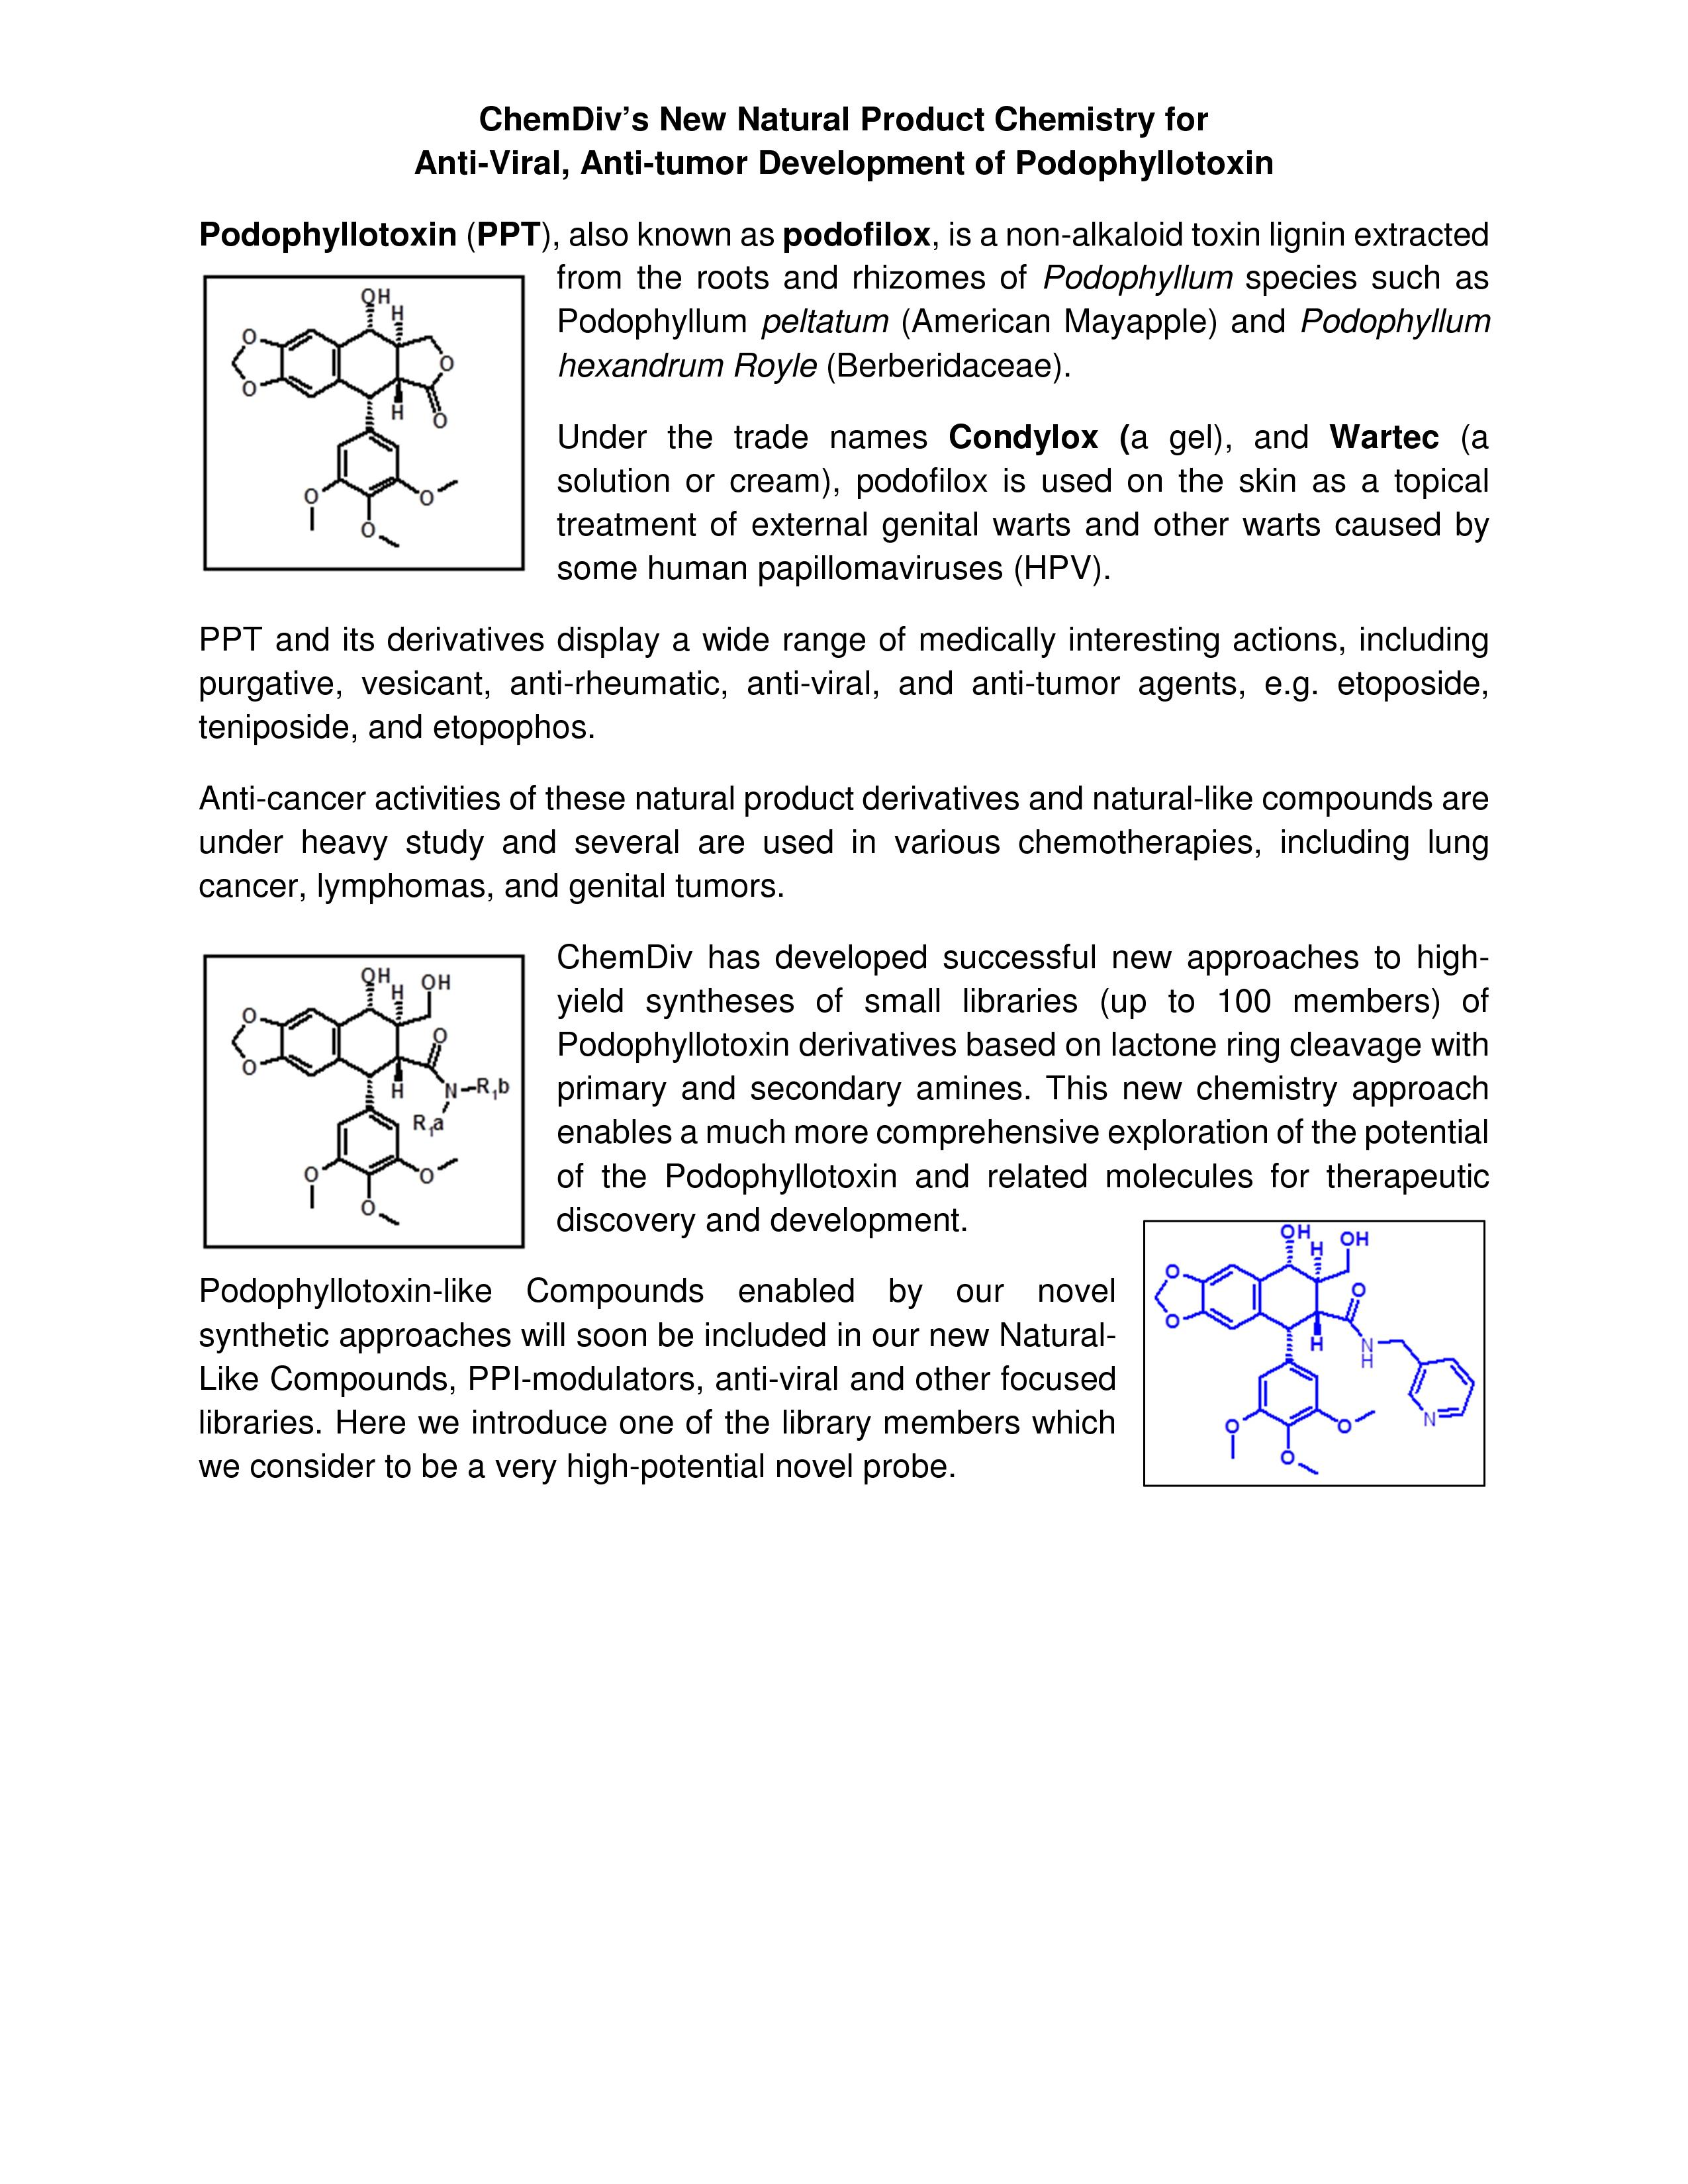 Featured Scaffold Podophyllotoxin (2)